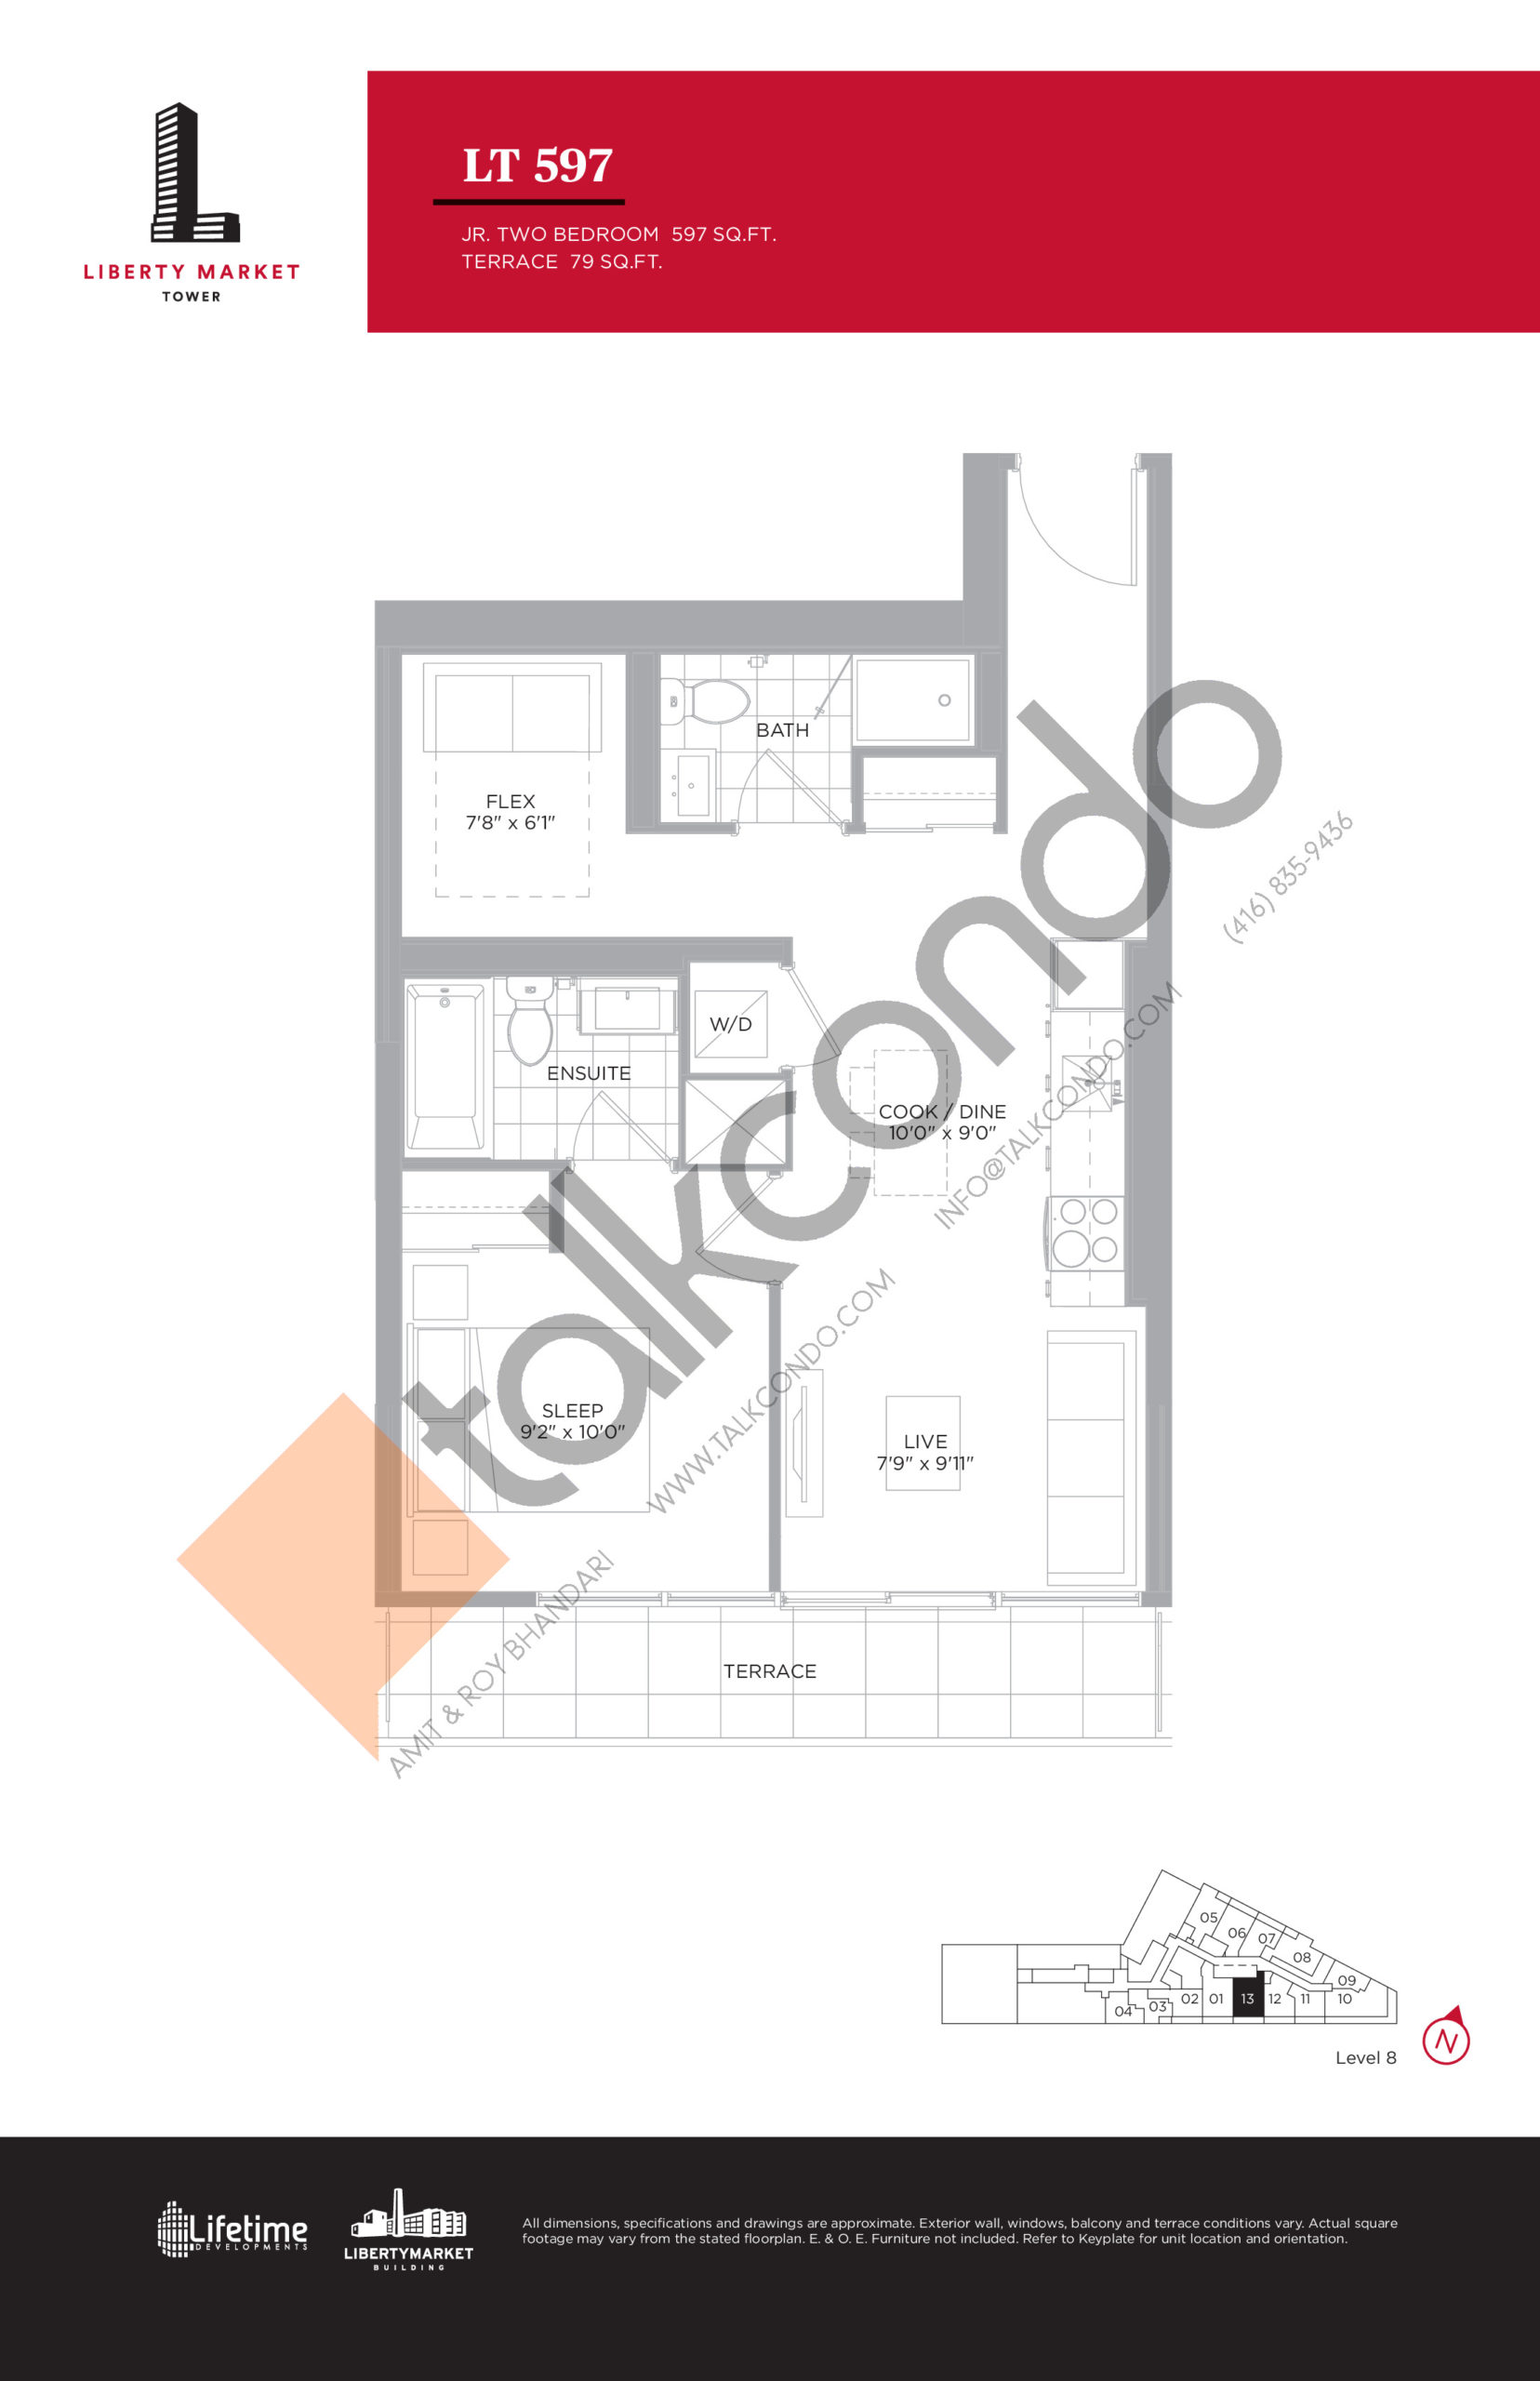 LT 597 - Terrace Collection Floor Plan at Liberty Market Tower Condos - 597 sq.ft